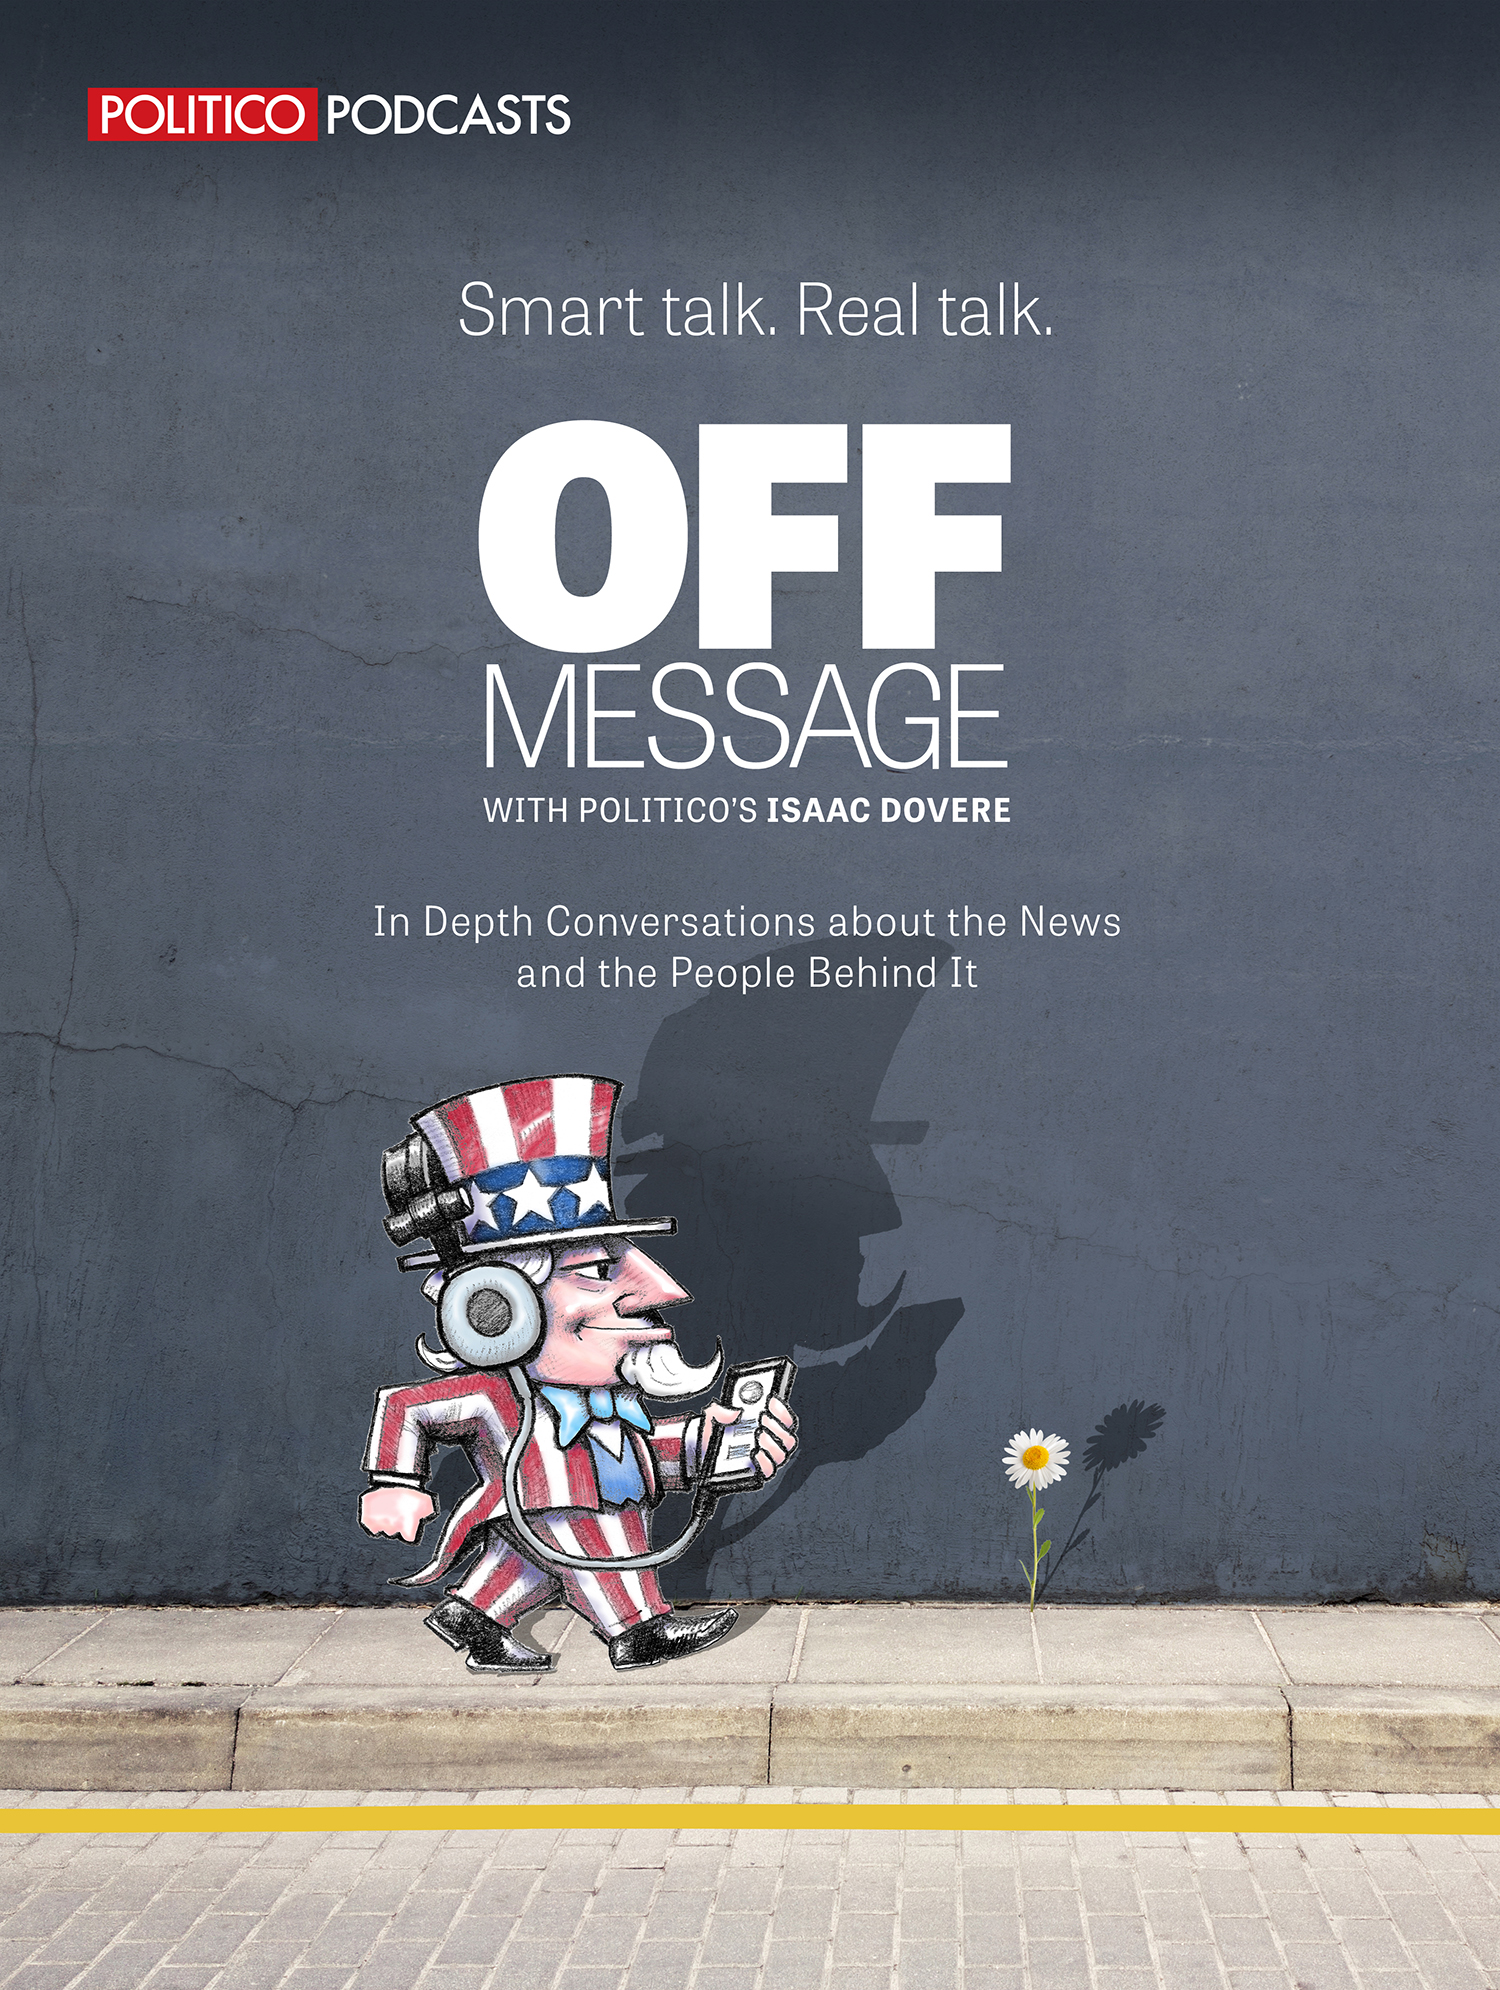 Mock-up for one of Politico's successful podcasts